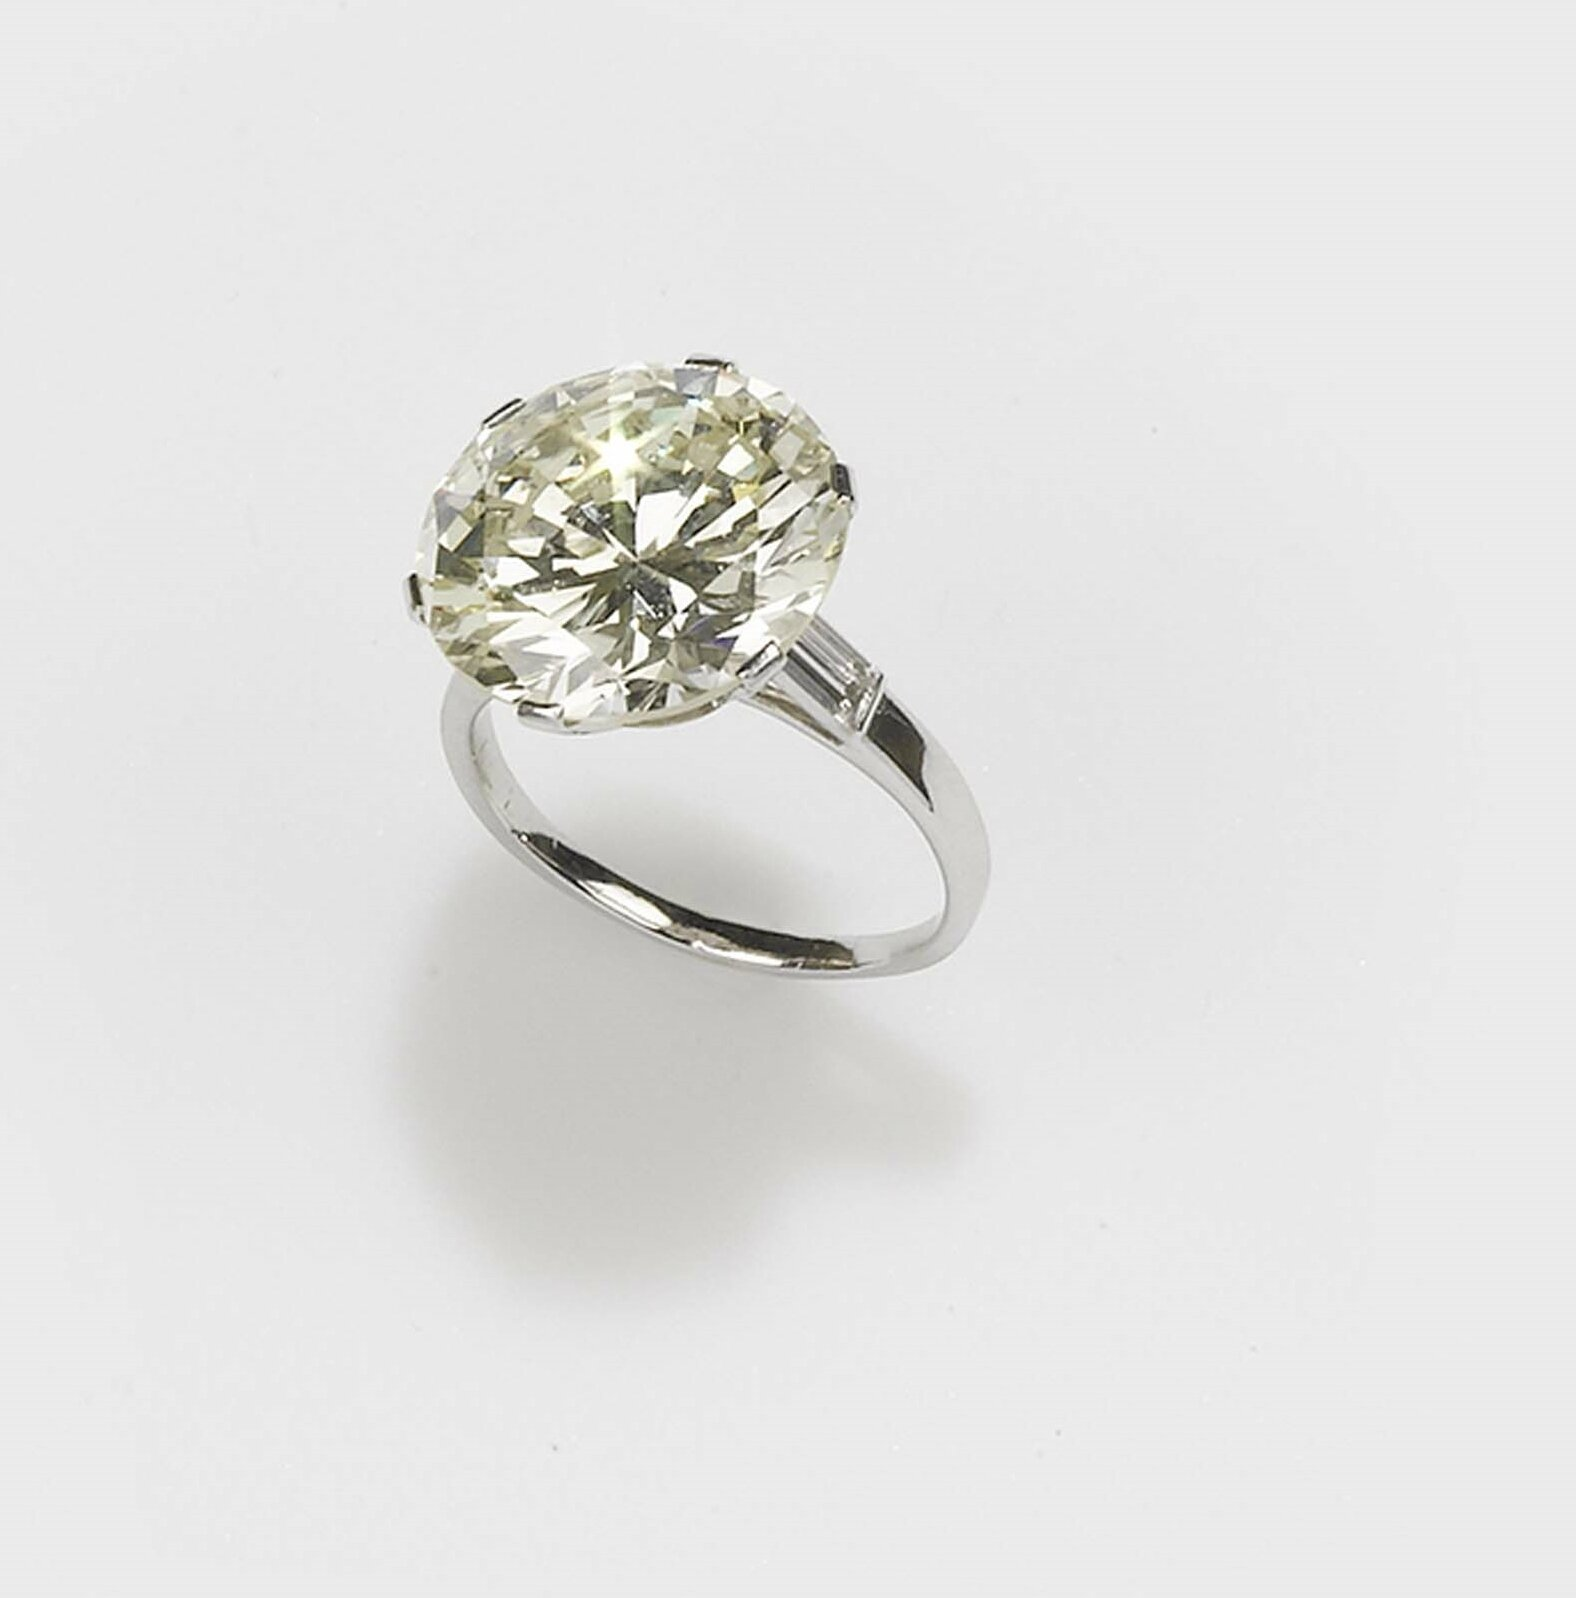 Diamond solitaire ring of approximately 17.00 carat